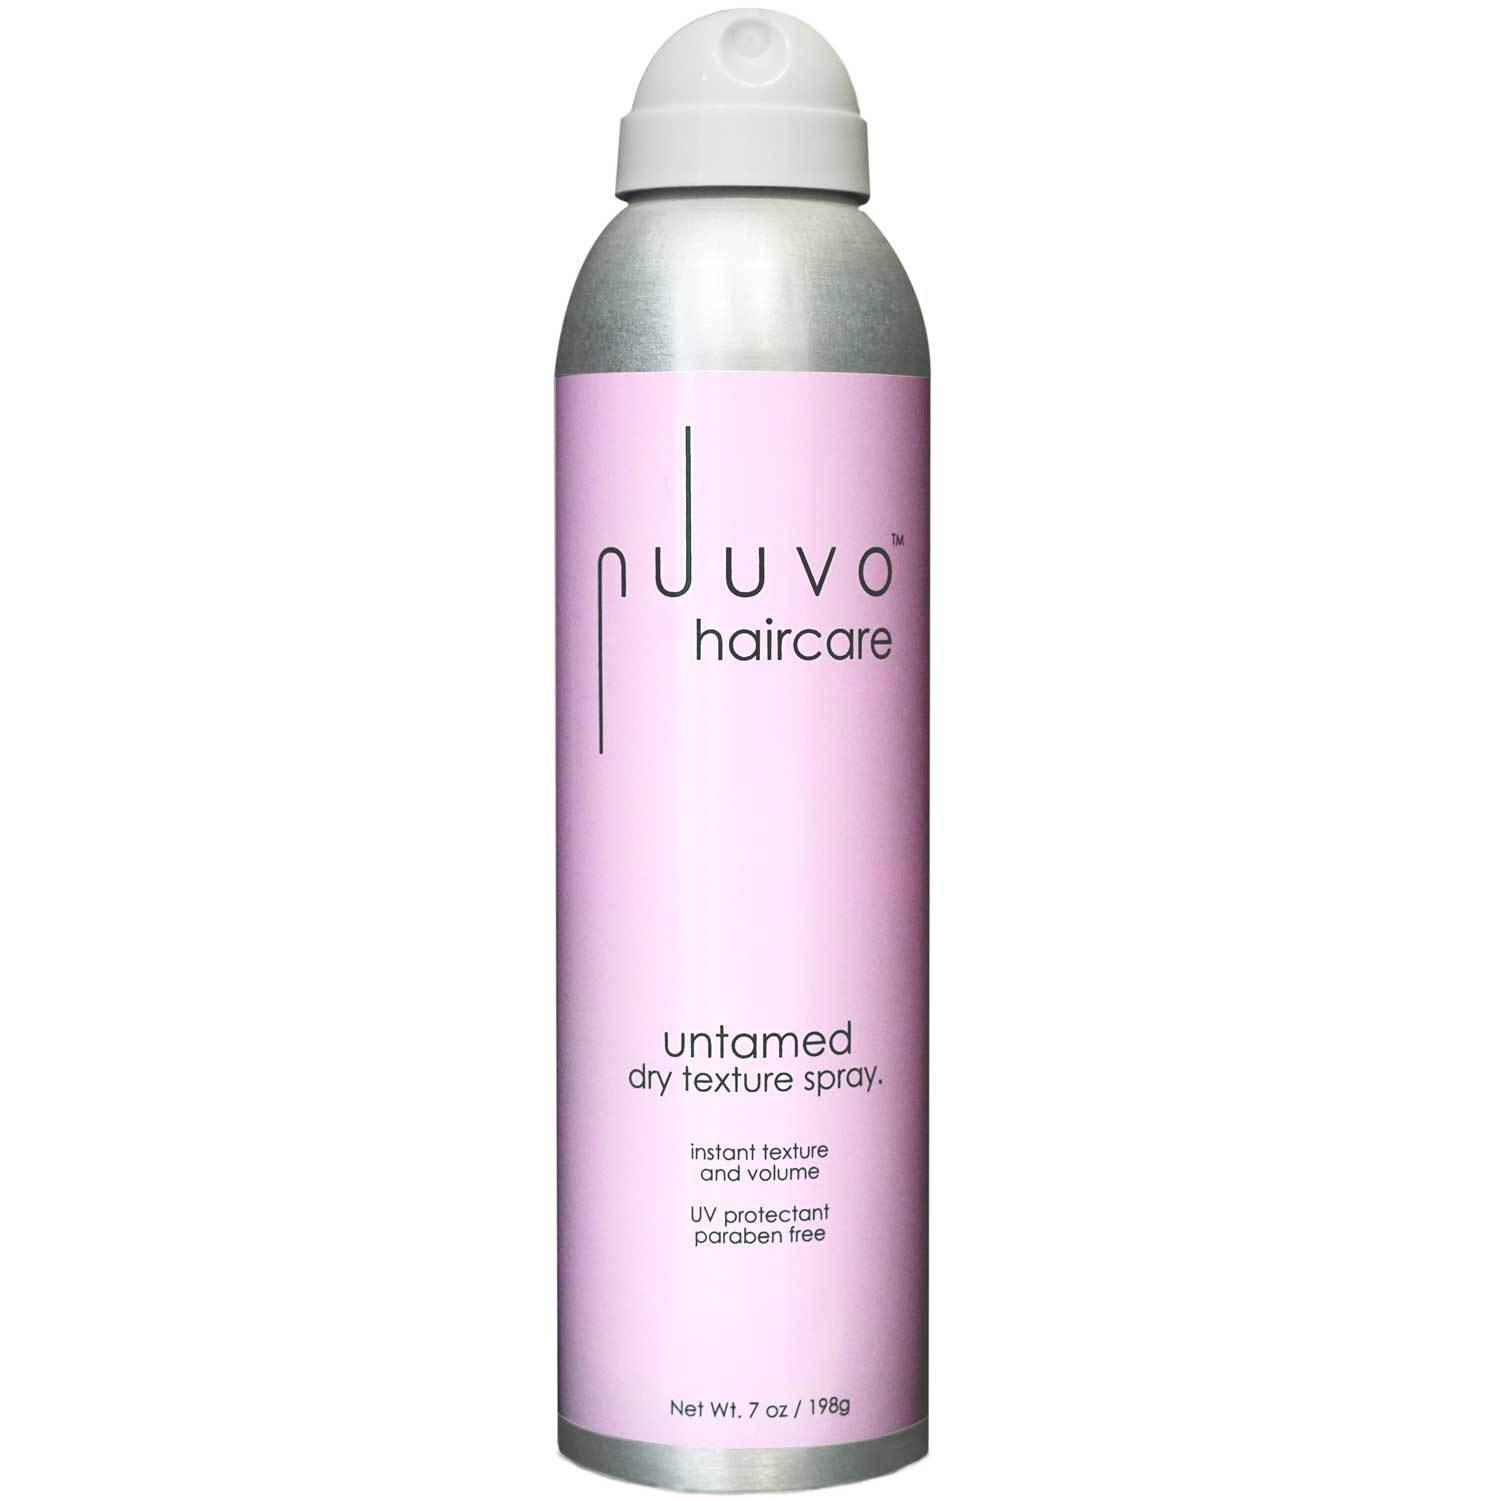 'untamed' Salon Professional Dry Texturizing Hairspray from Nuuvo Haircare - Adds Volume, Definition & Fullness